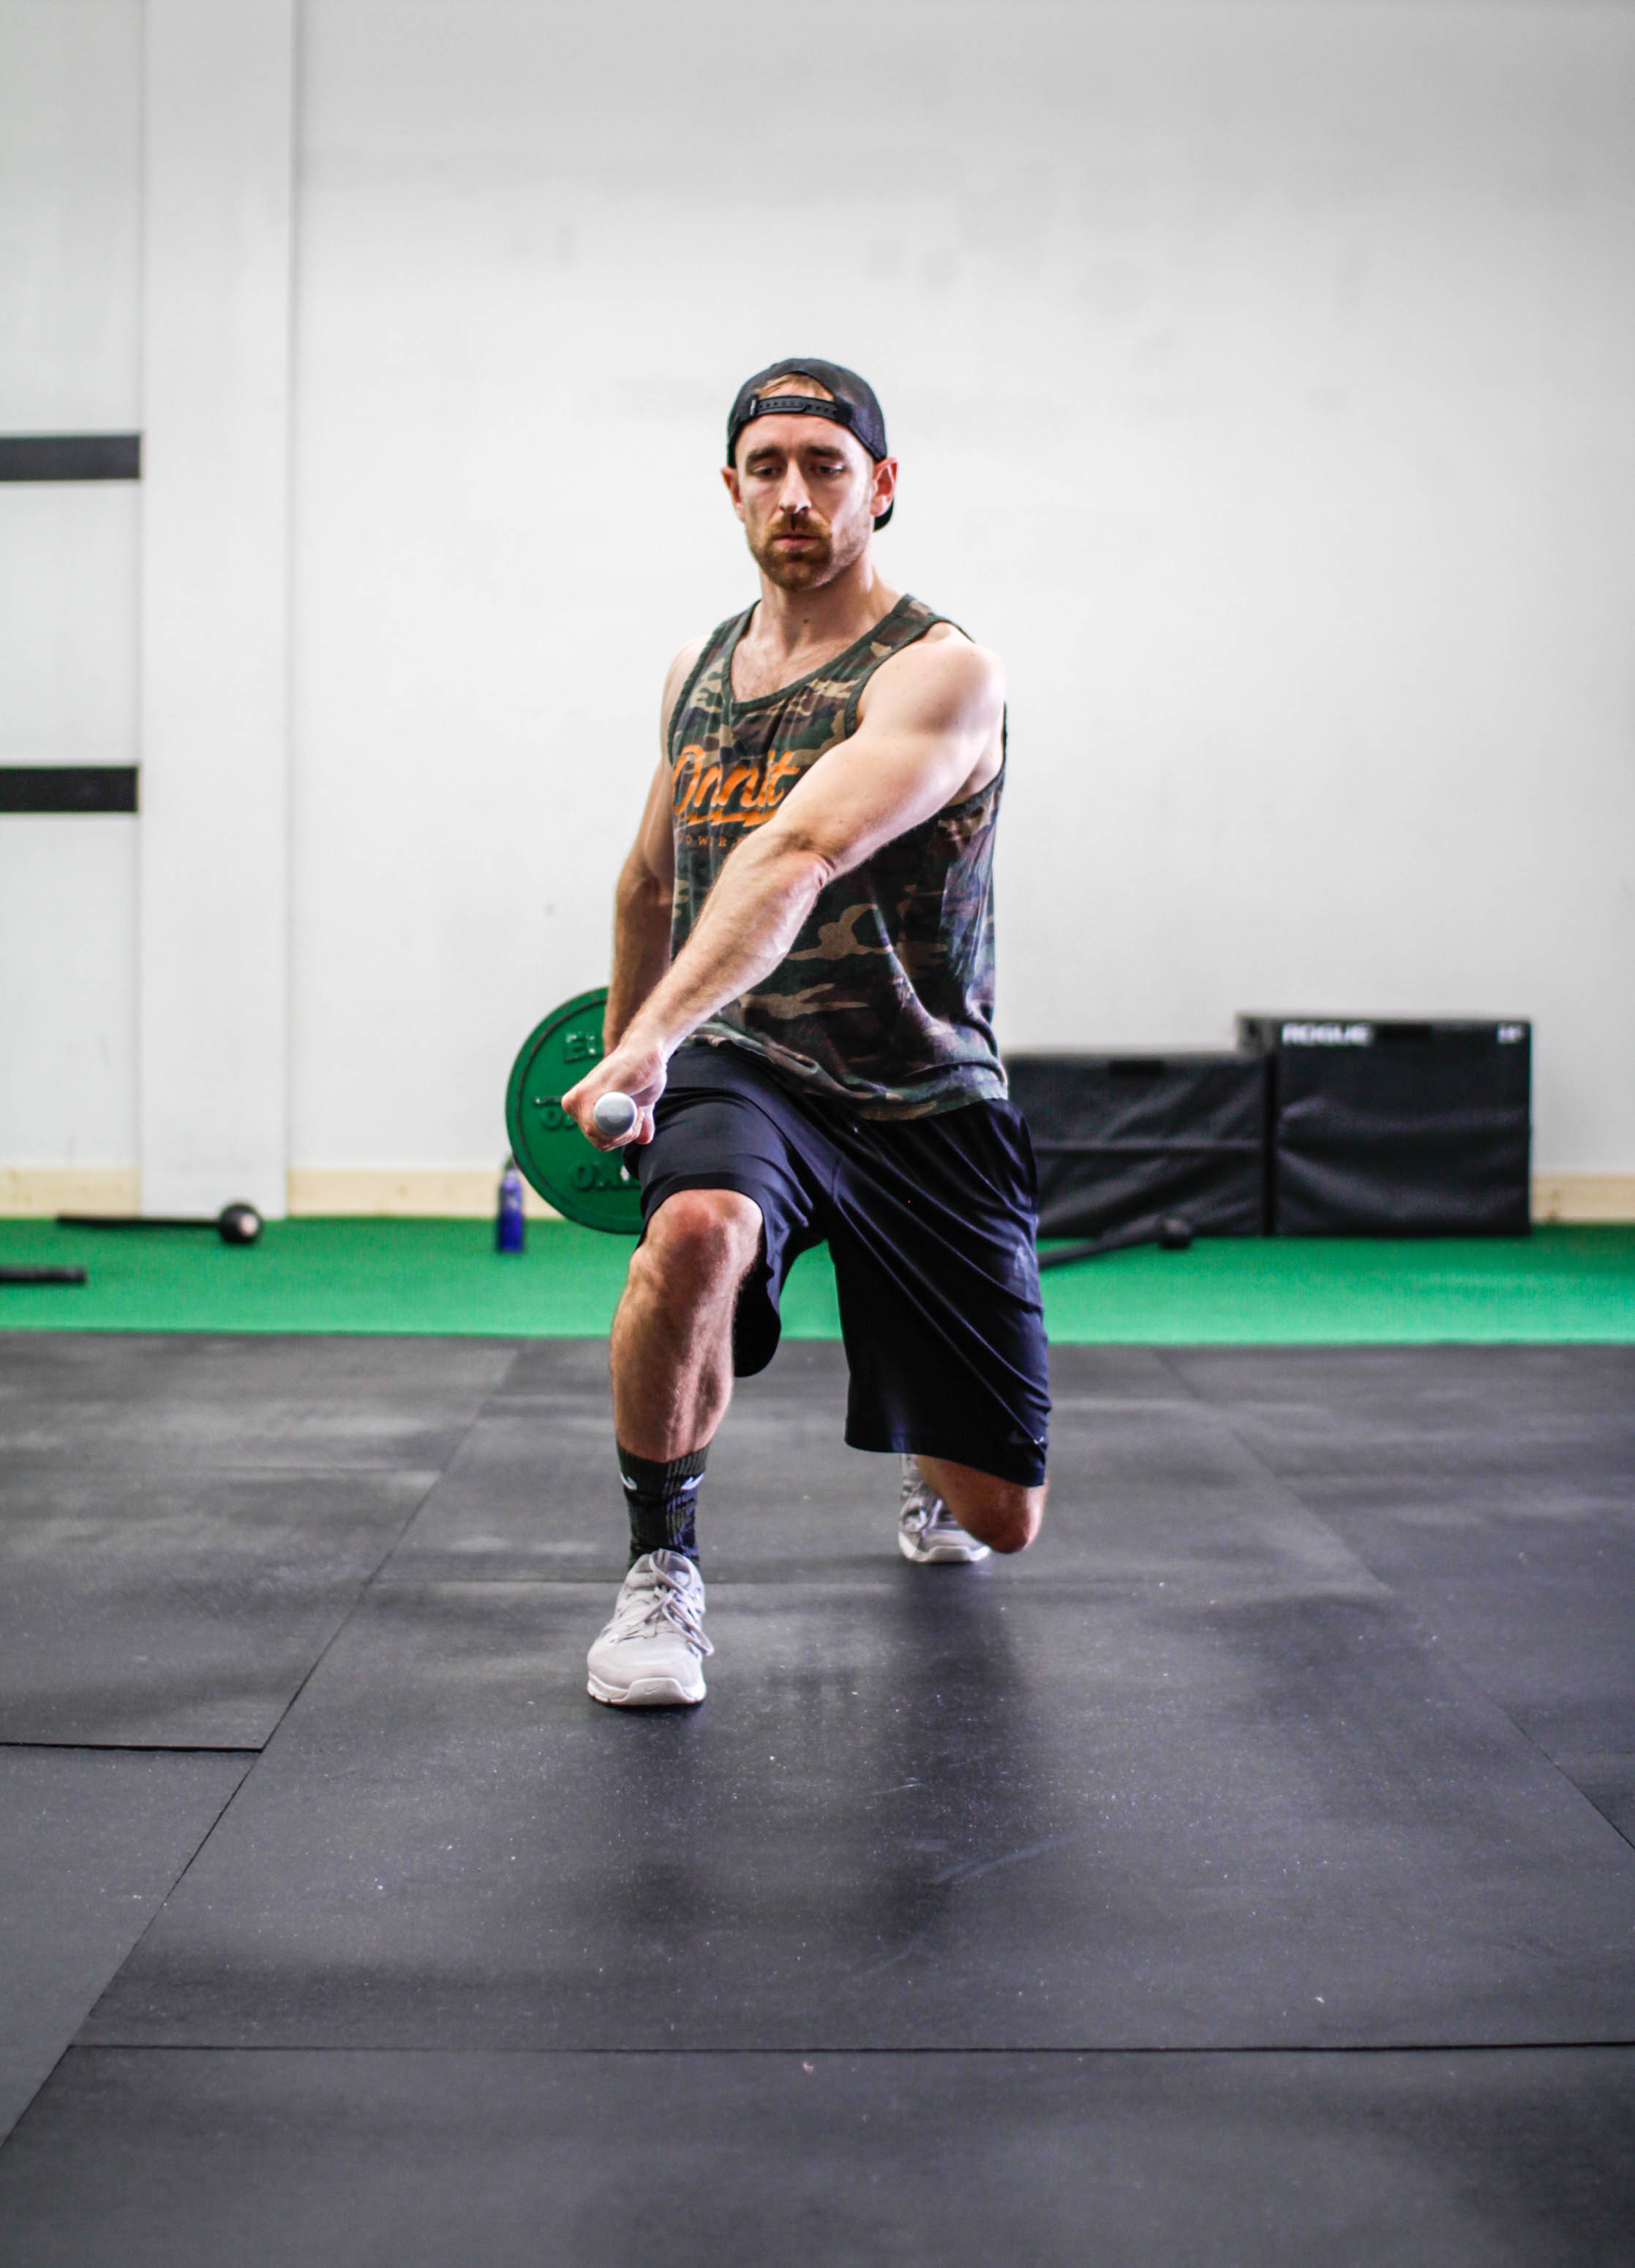 Personal Trainer, TJ Lawson of Midwest Strength + Performance